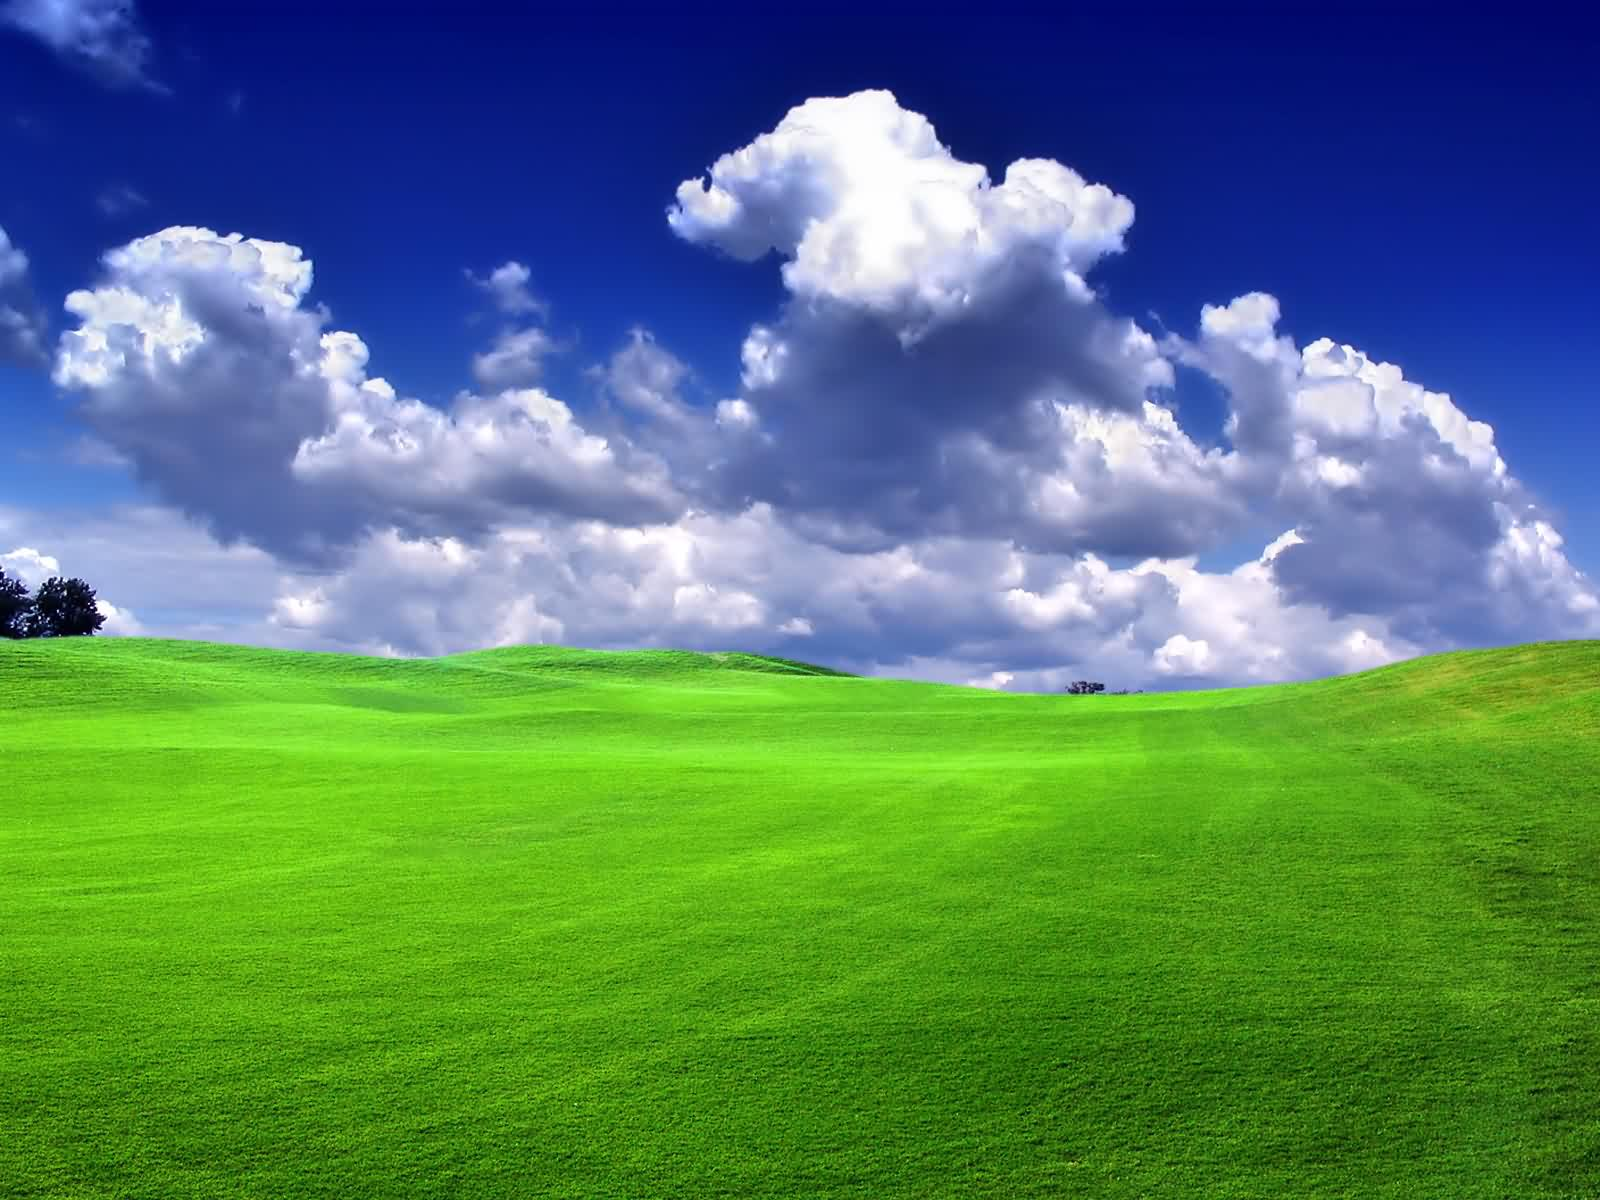 1600x1200 green field desktop pc and mac wallpaper - Desktop wallpaper 1600x1200 ...